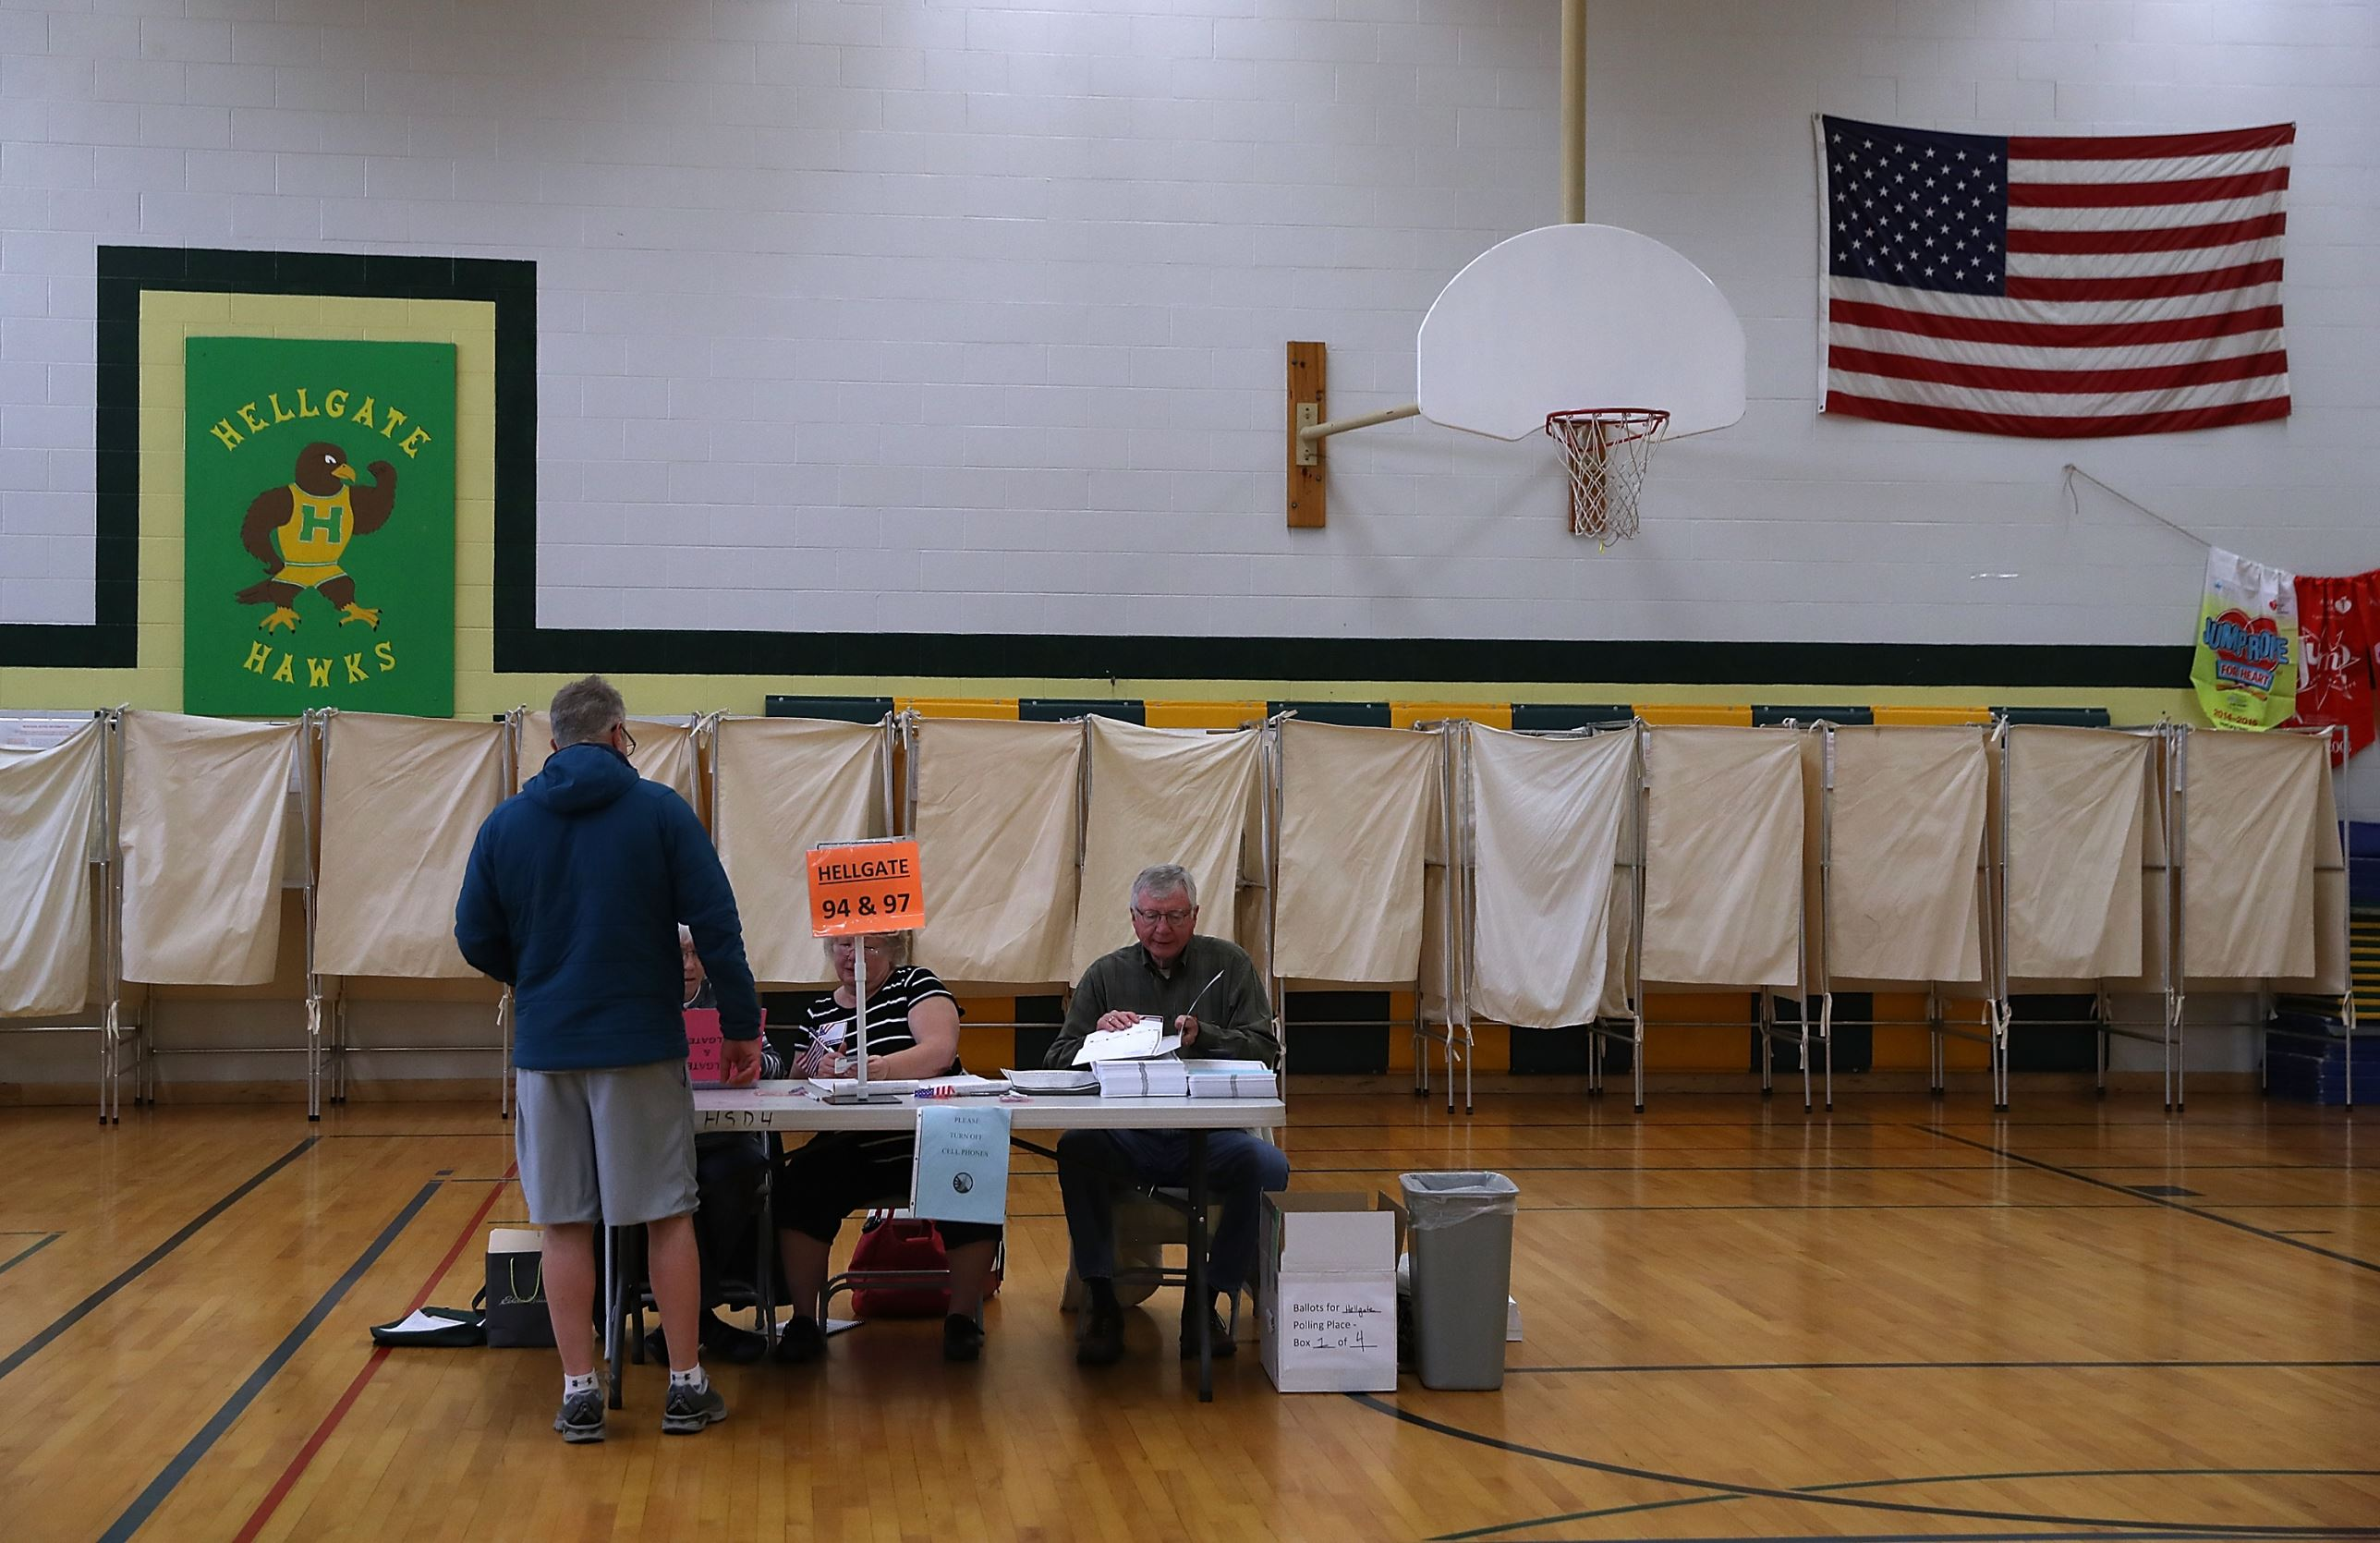 A voter registers in a polling station at Hellgate Elementary School on May 25, 2017 in Missoula, United States.